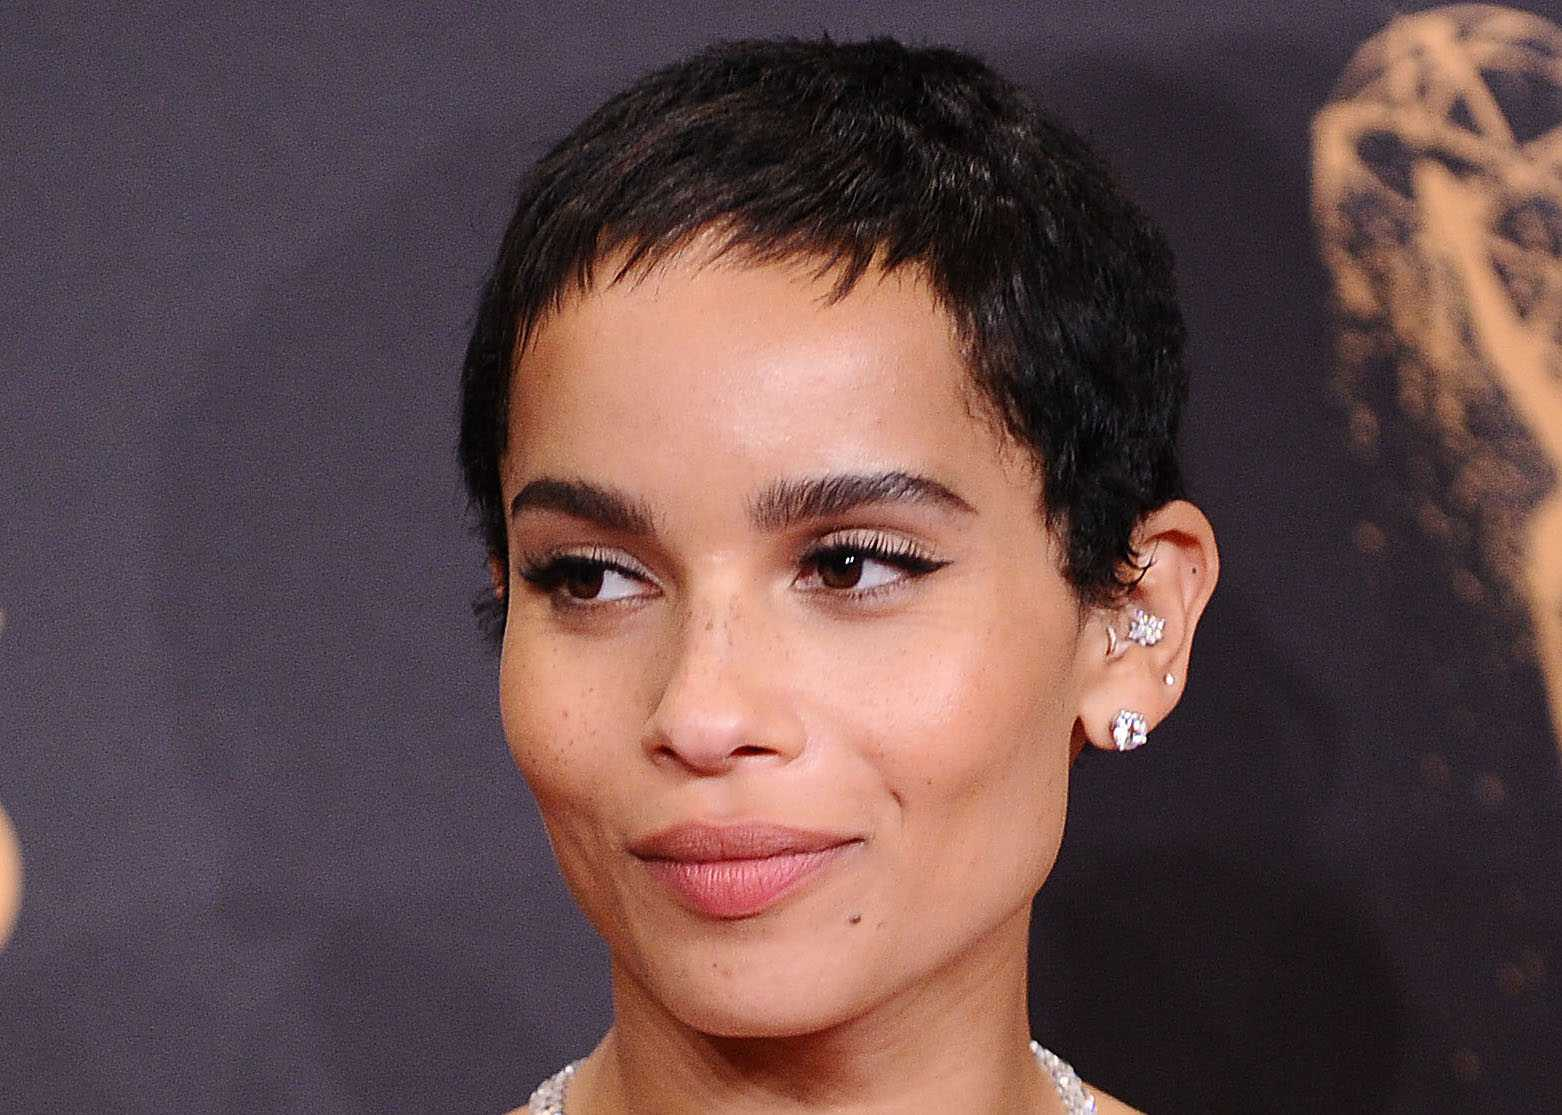 the 7 best styling products for a pixie haircut